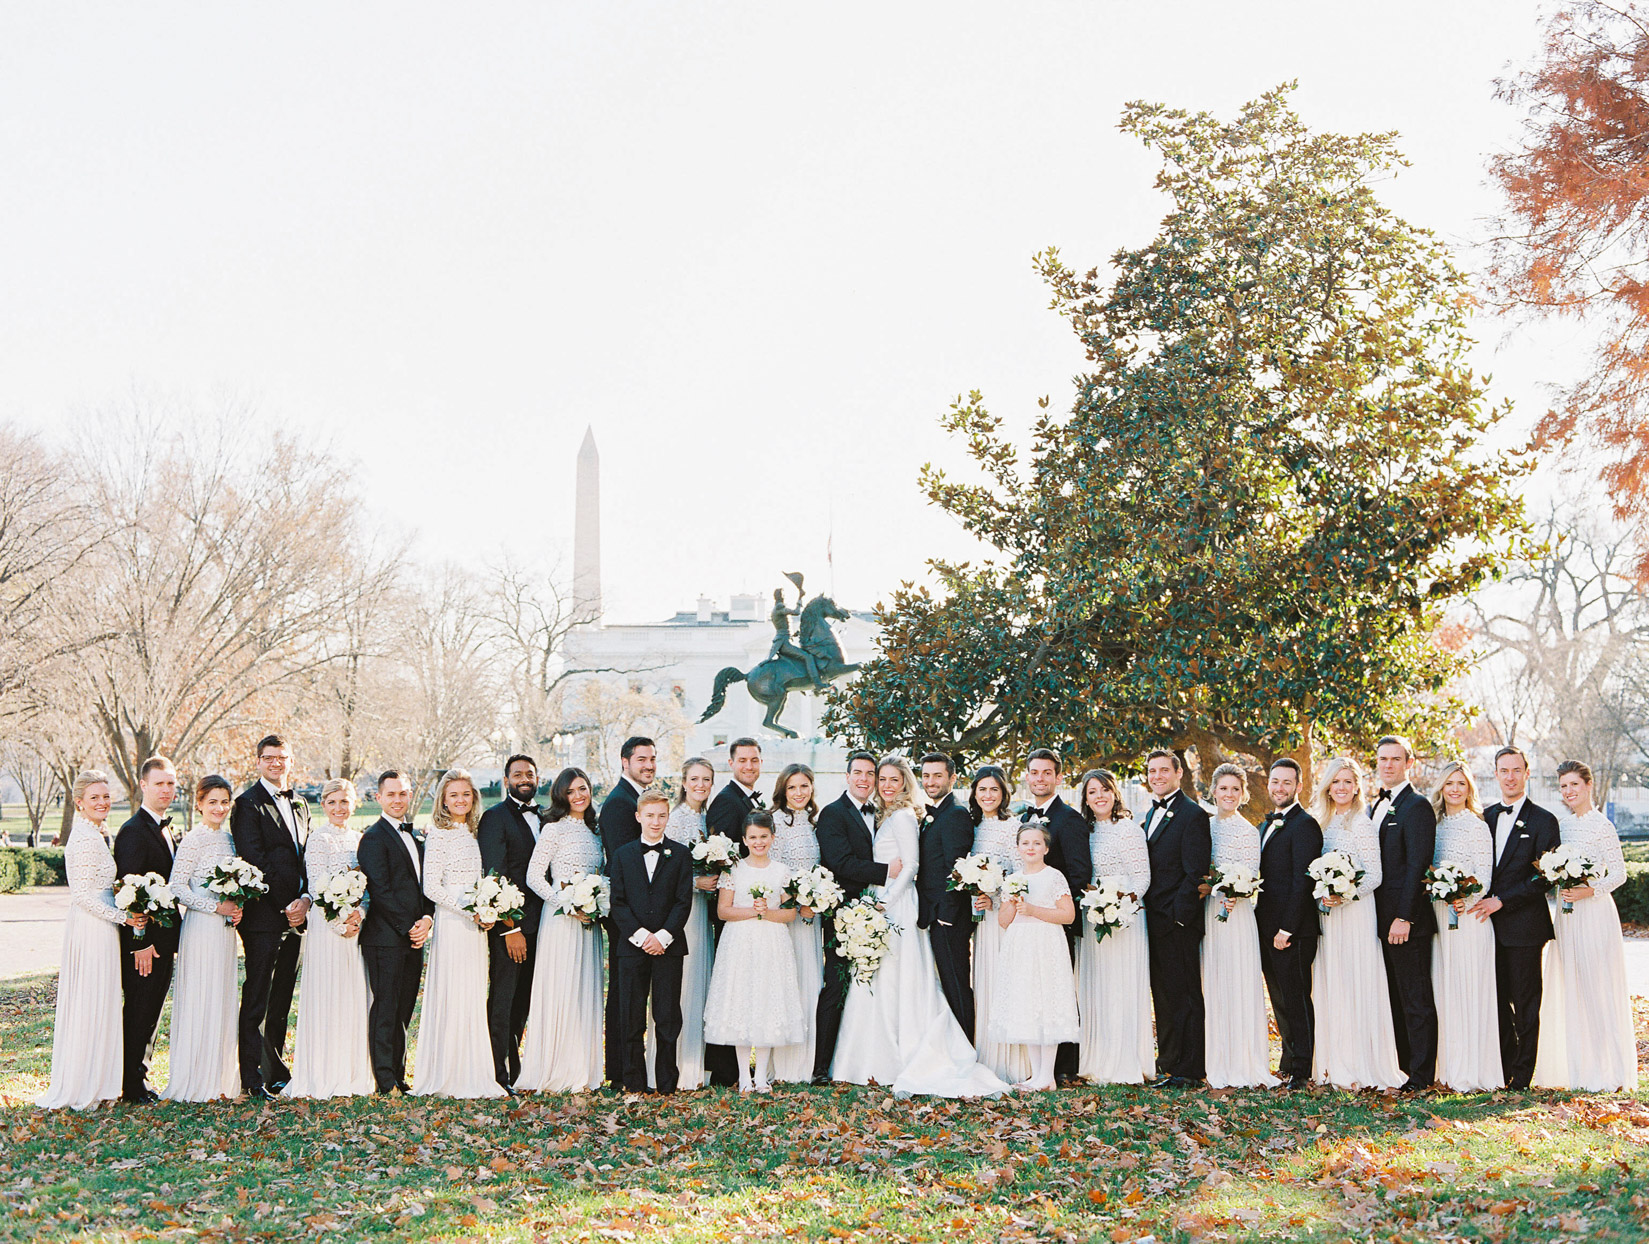 large wedding party photo in front of D.C. architecture